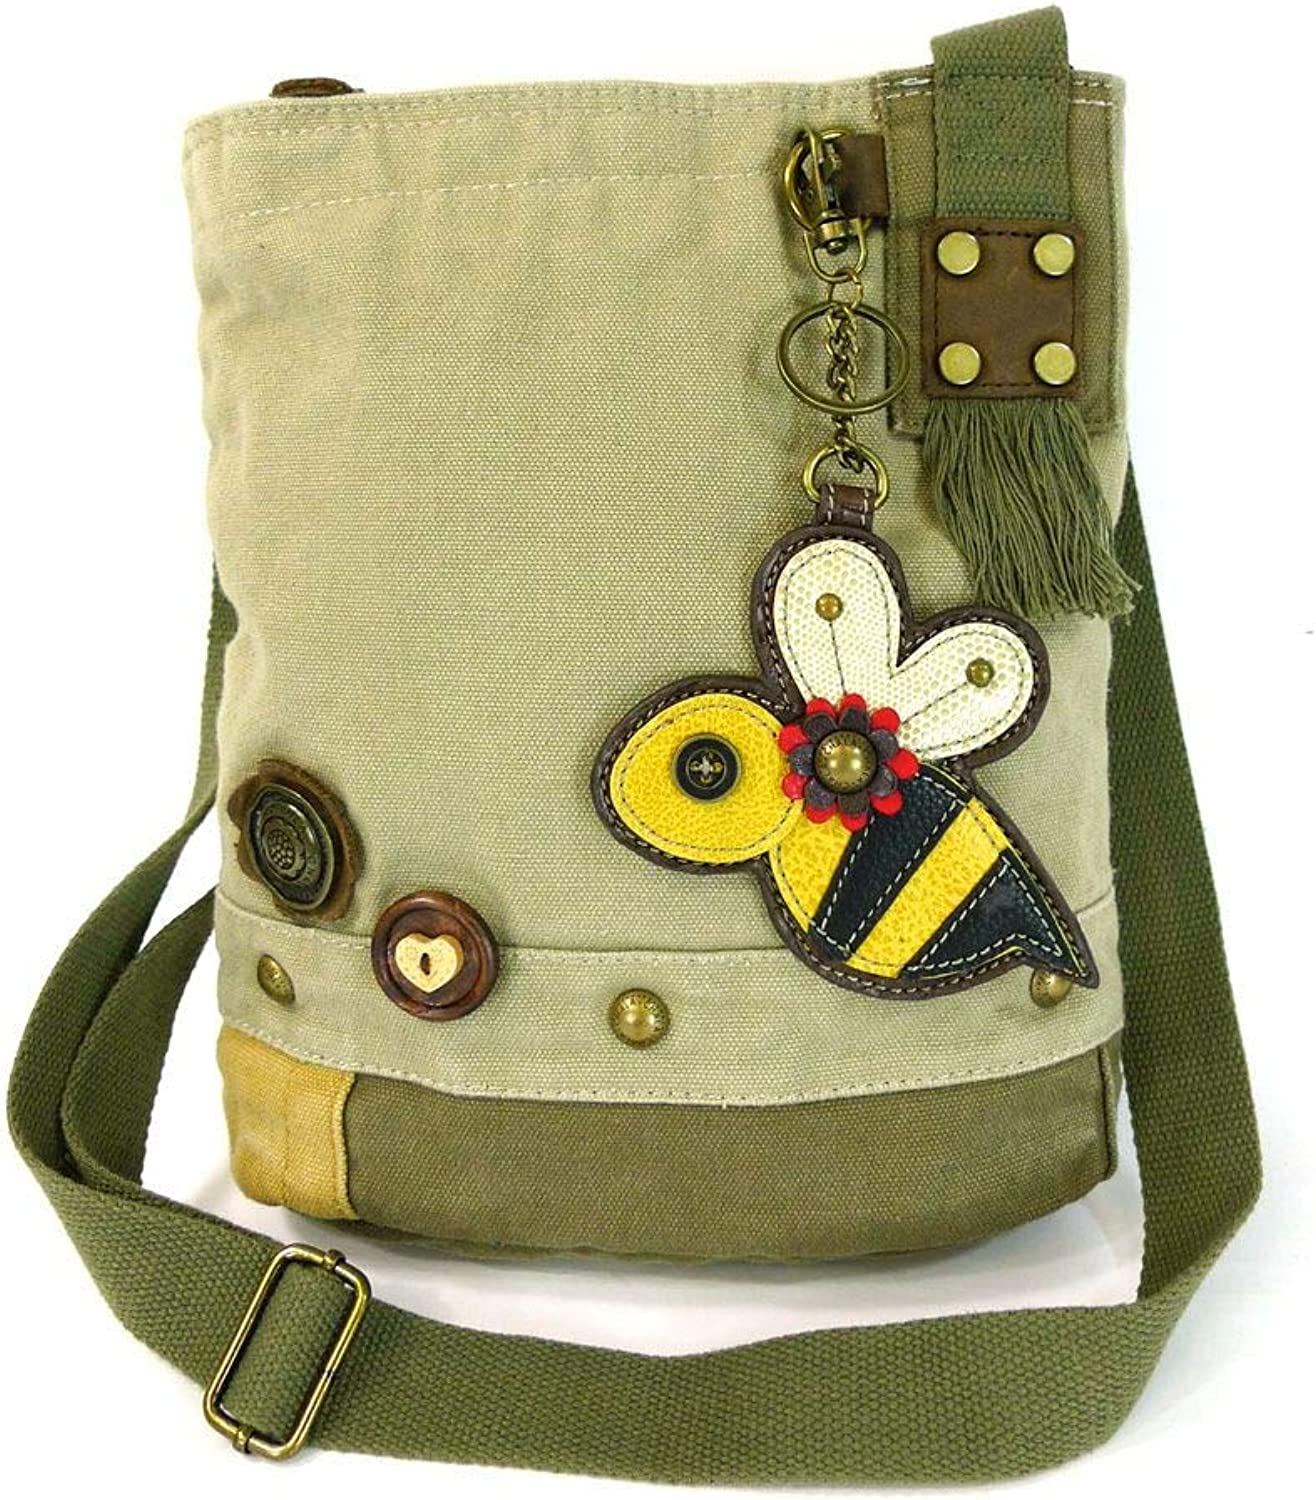 Chala Patch Crossbody Bag Canvas gift Messenger Sand Brown Coin Purse BUMBLE BEE